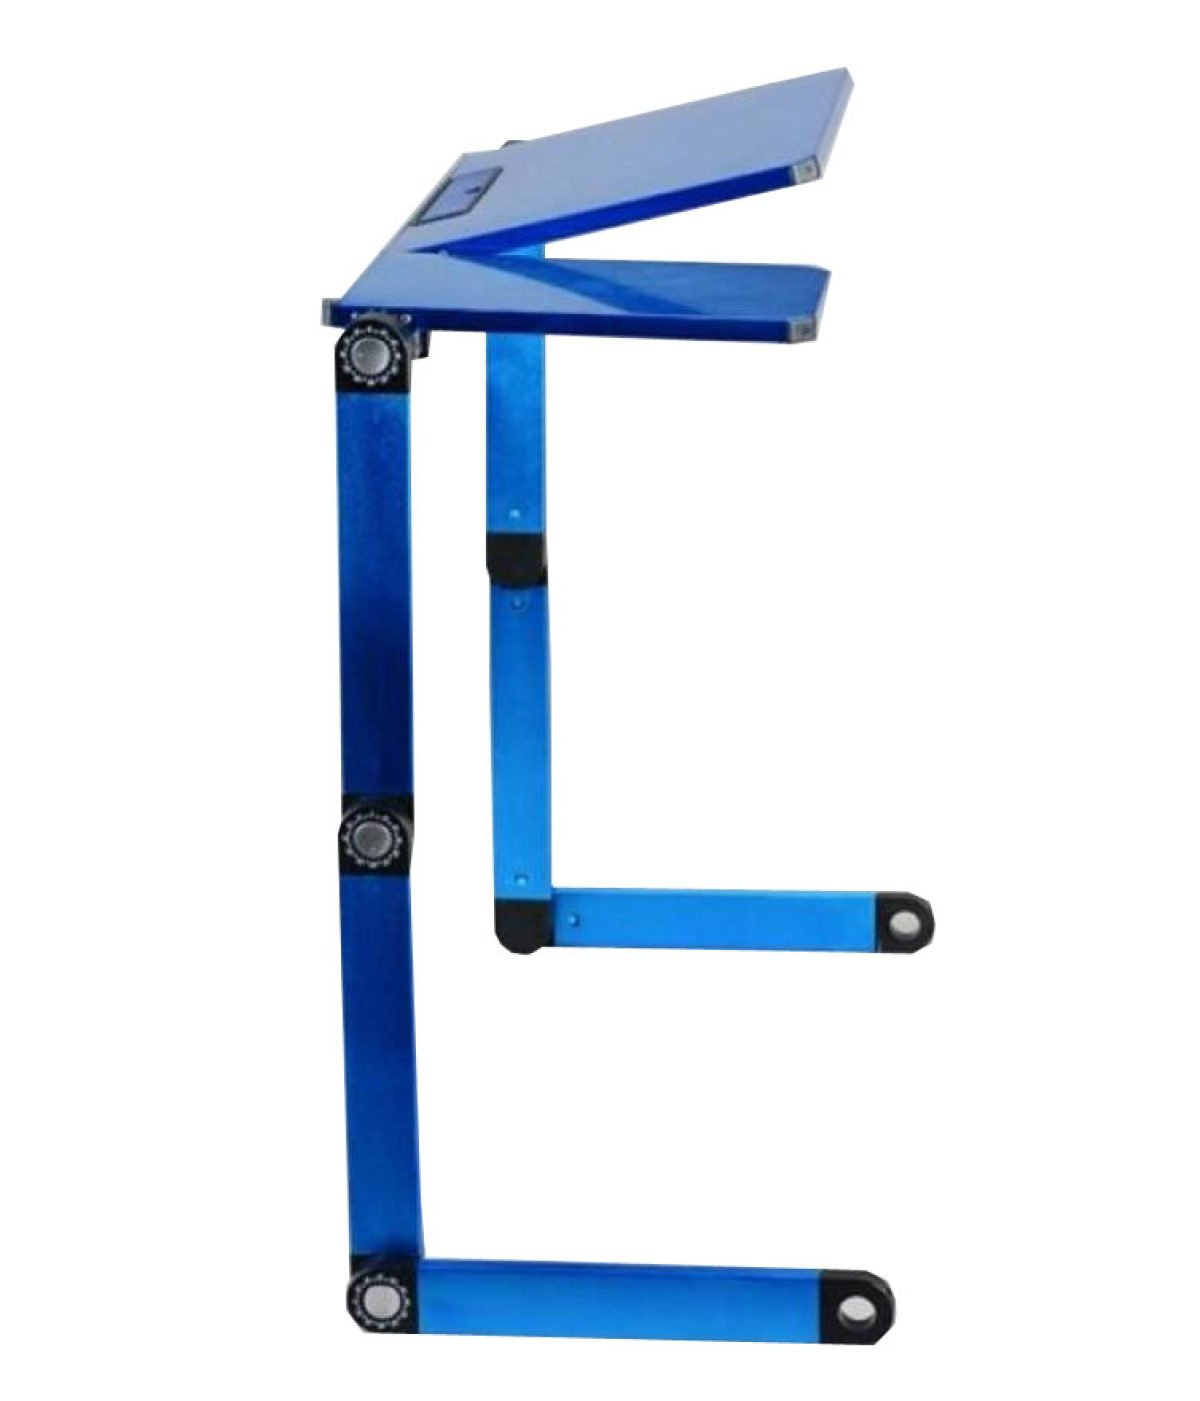 Laptop Table Aluminum Computer Table Bed Computer Table Folding Table Work Playing Game Folding Camping Table,Blue-OneSize